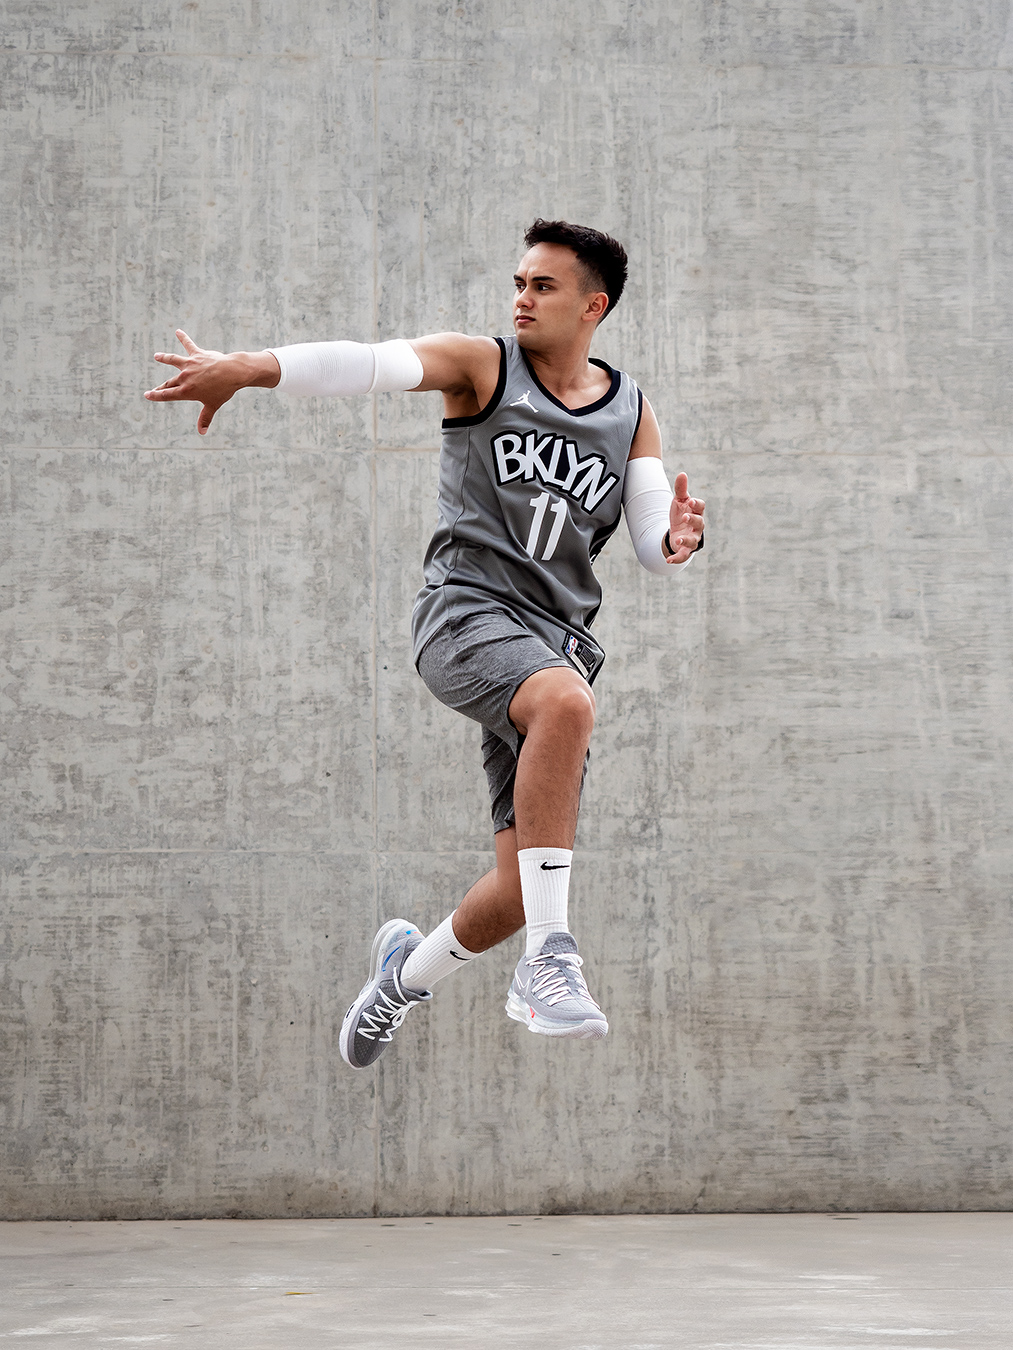 Professional formula one driver Luis passing the basketball mid air